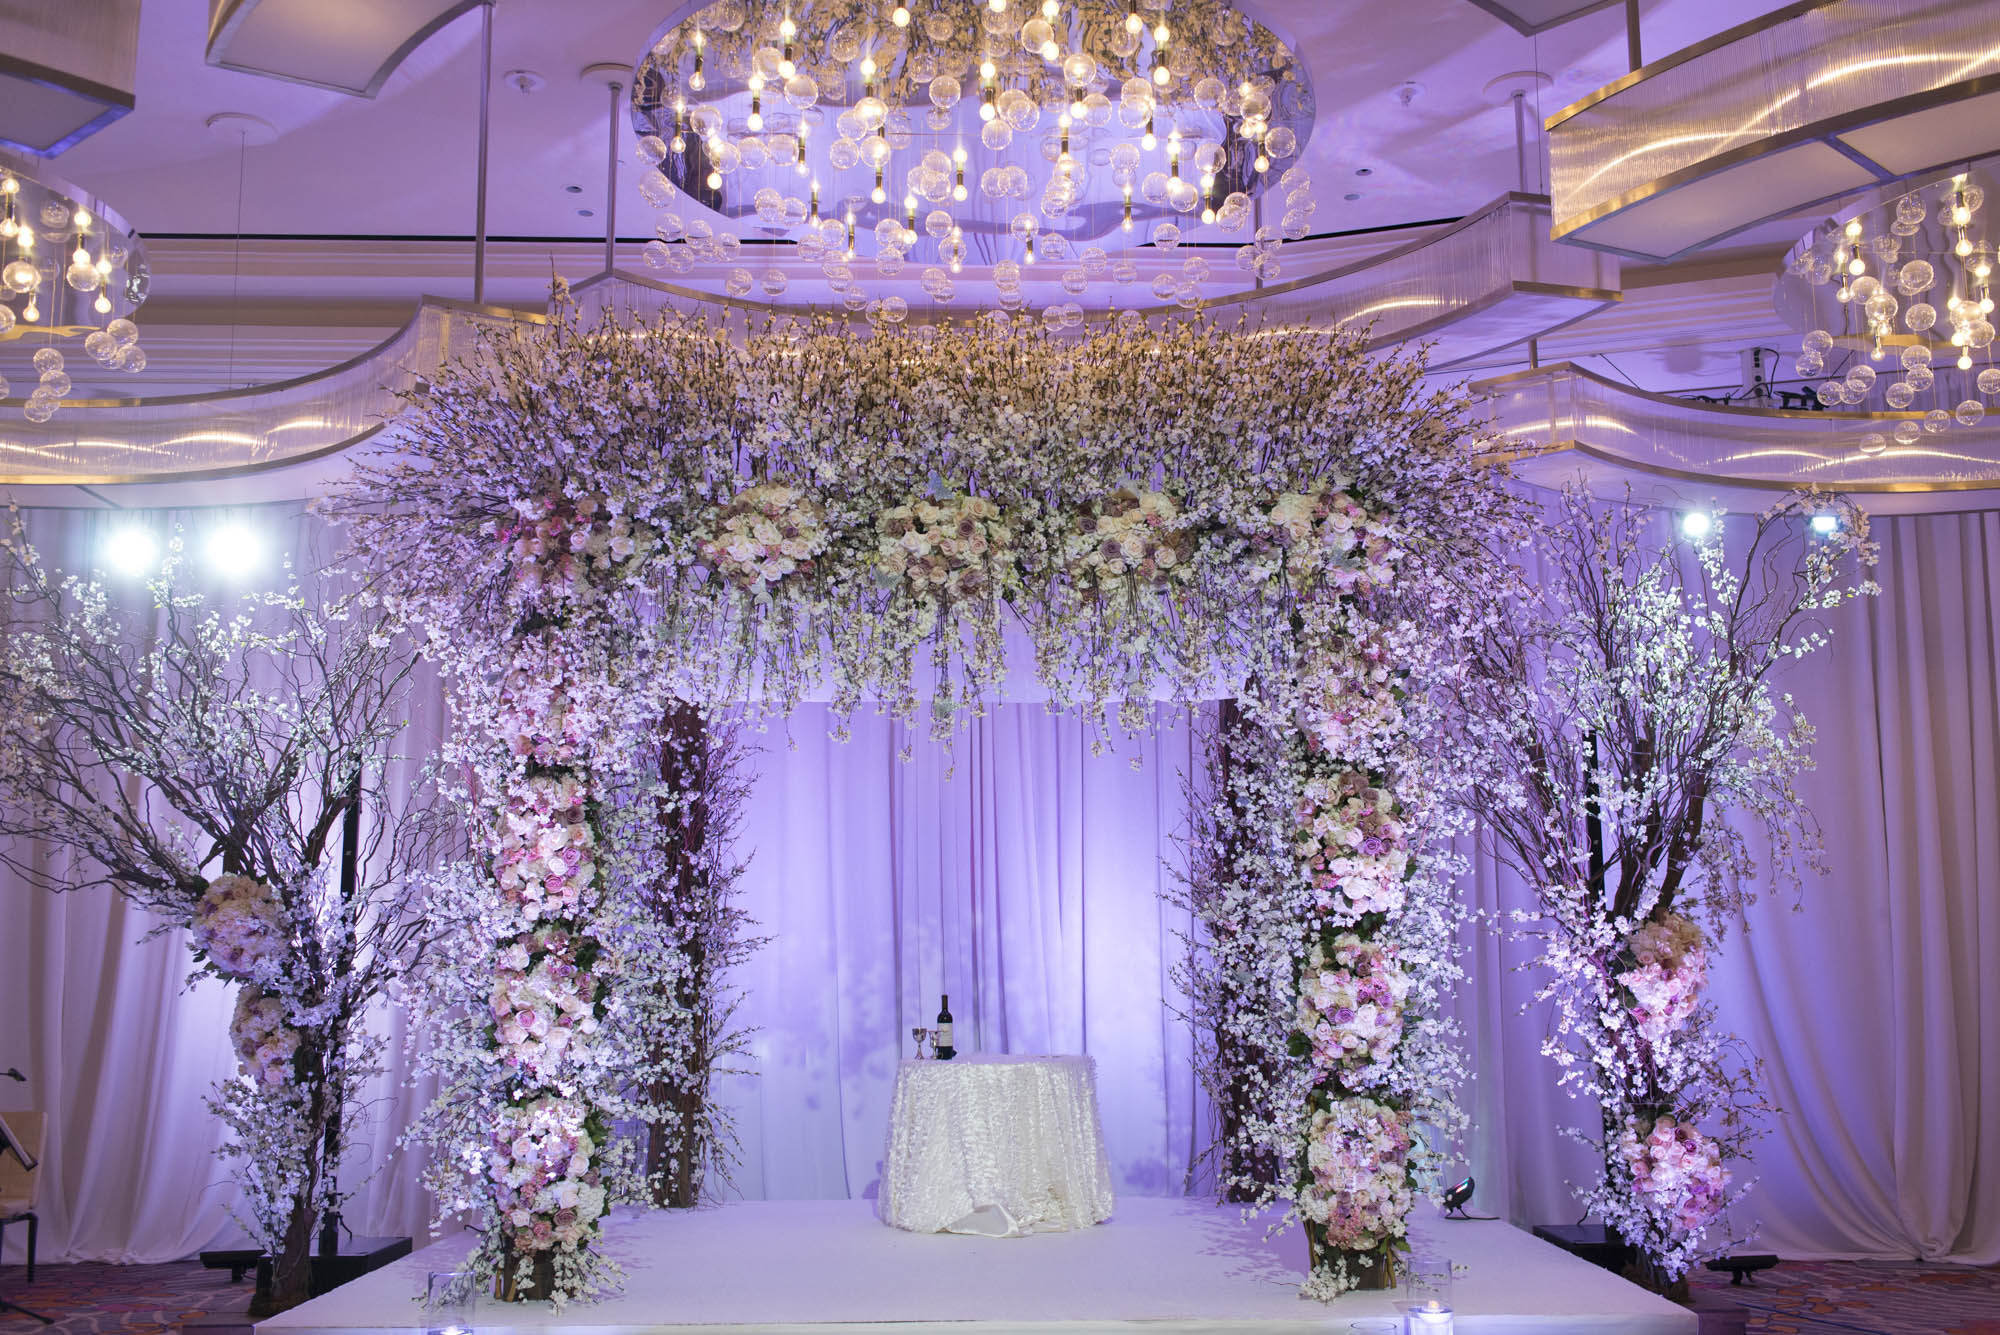 Pink & White Romantic Wedding - Destinations by Design